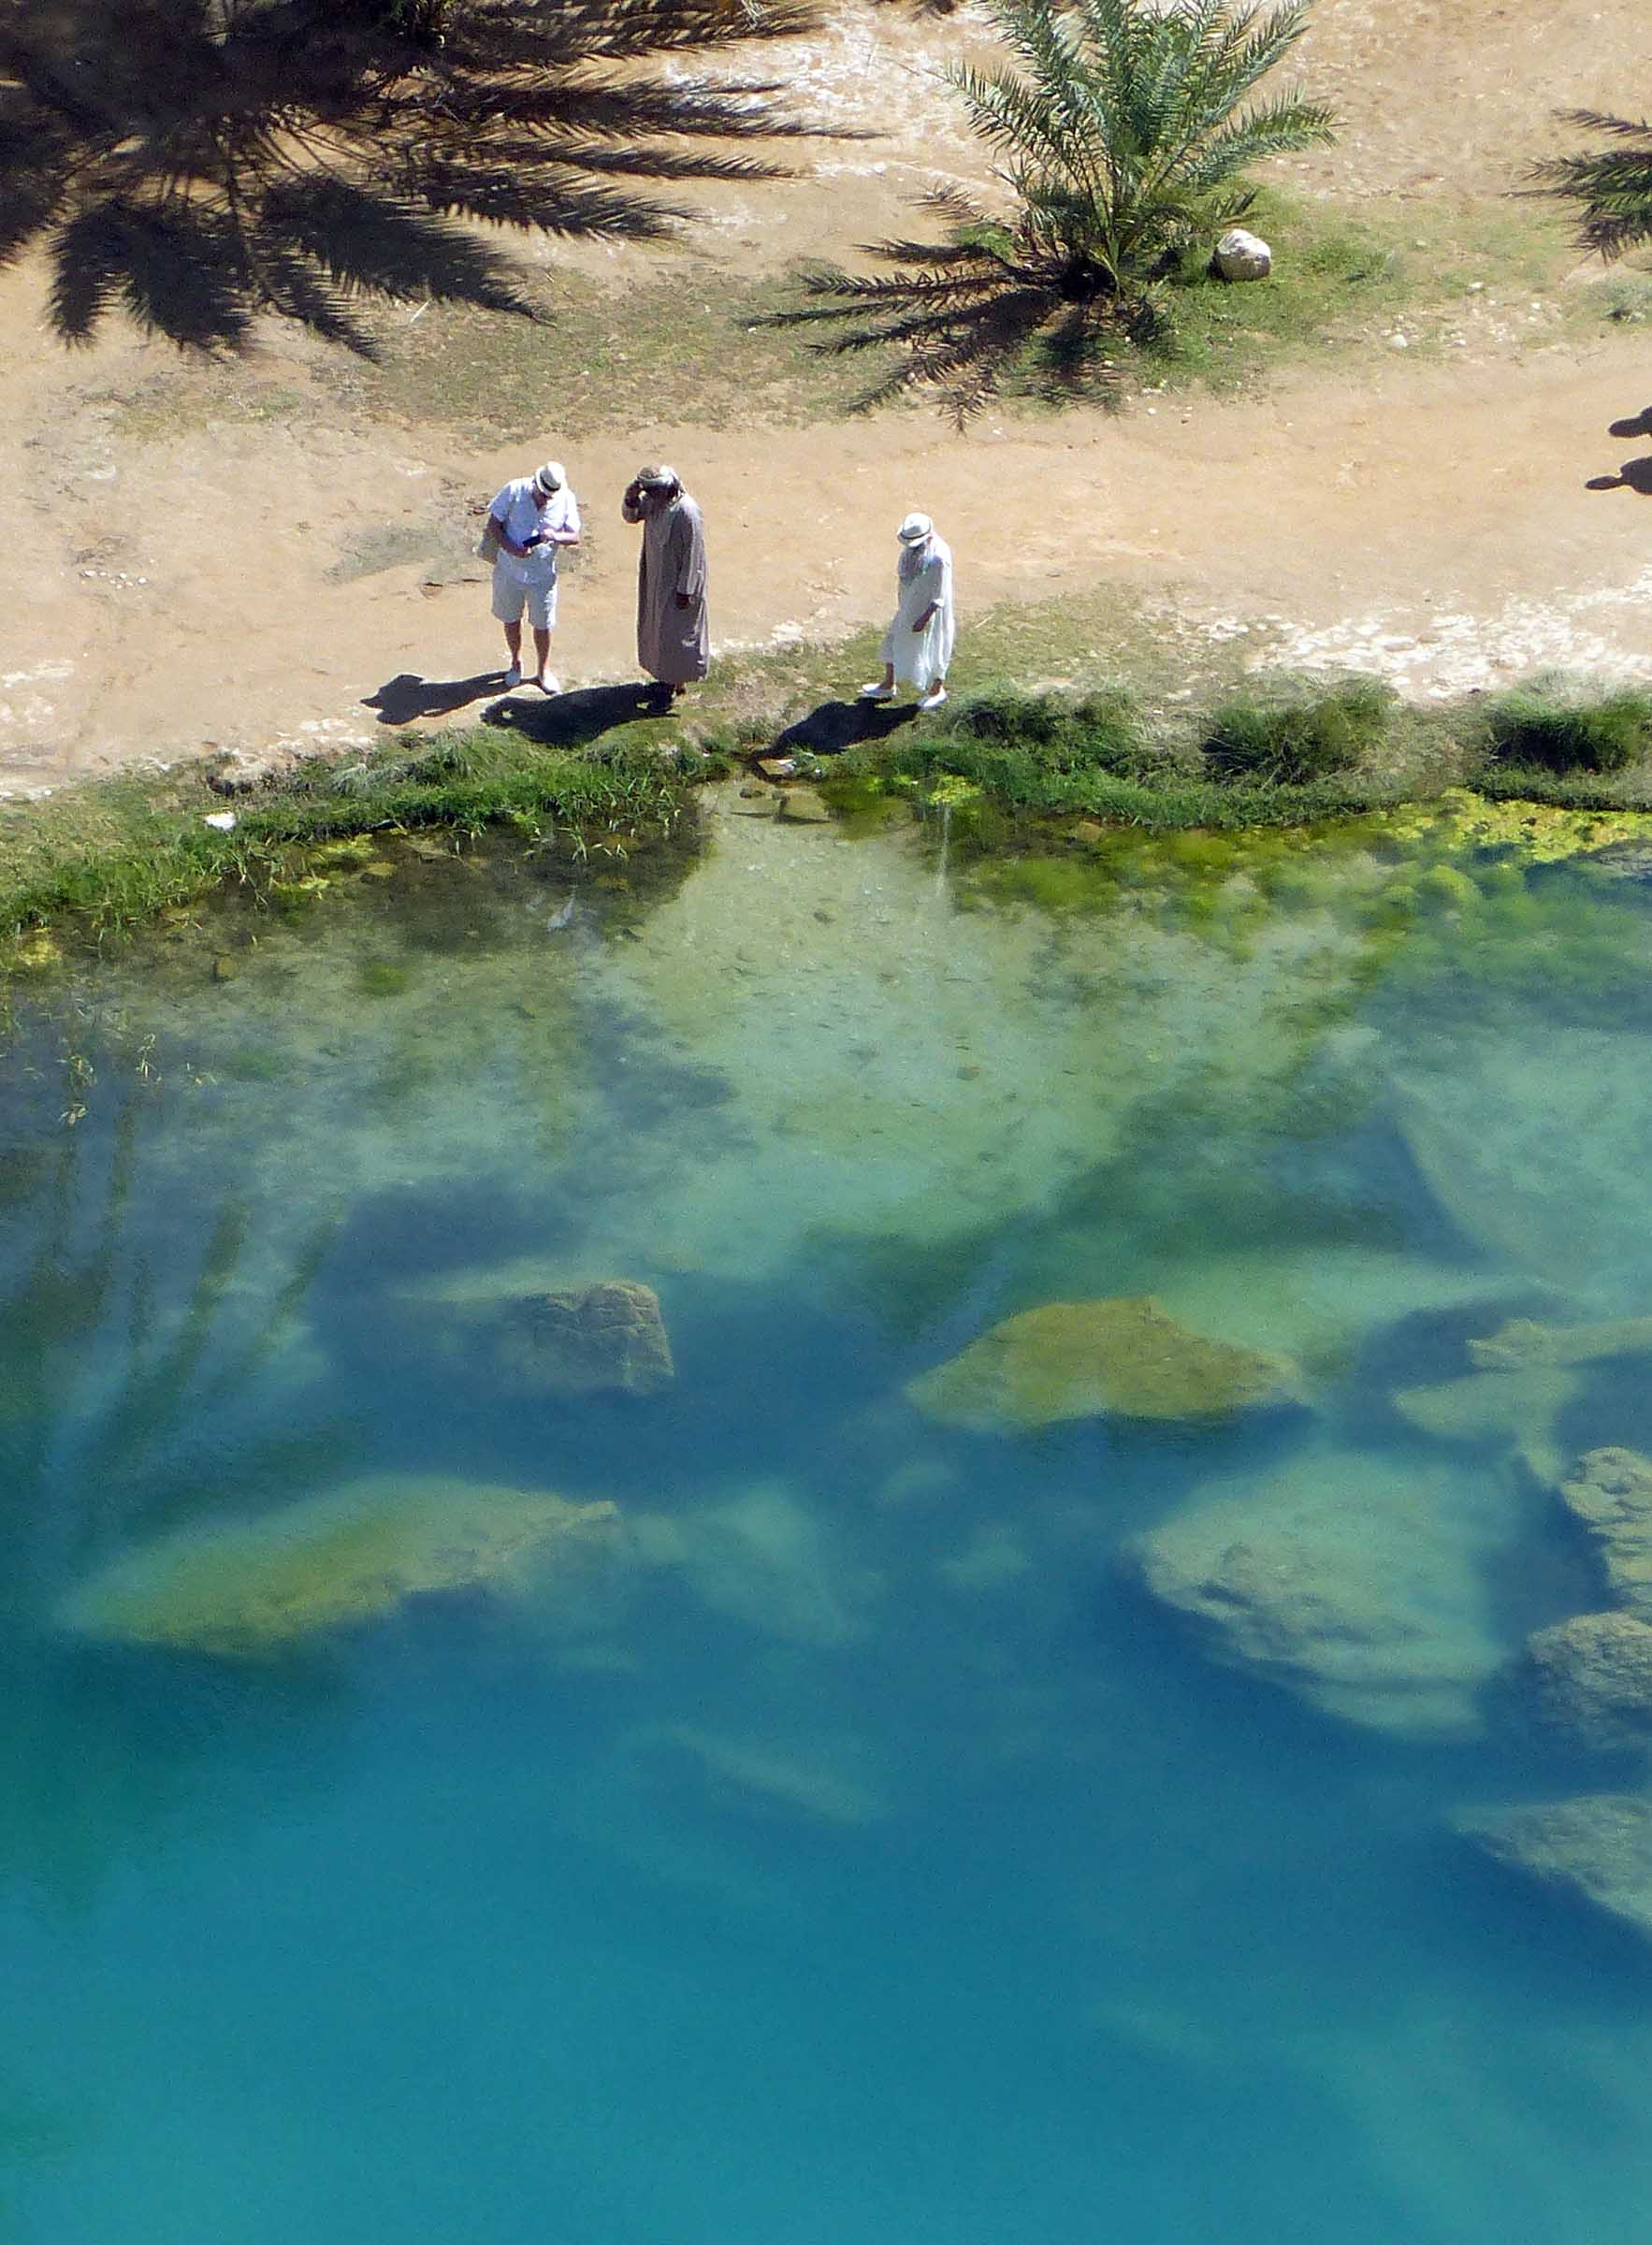 Green pool from above with three men talking on the banks